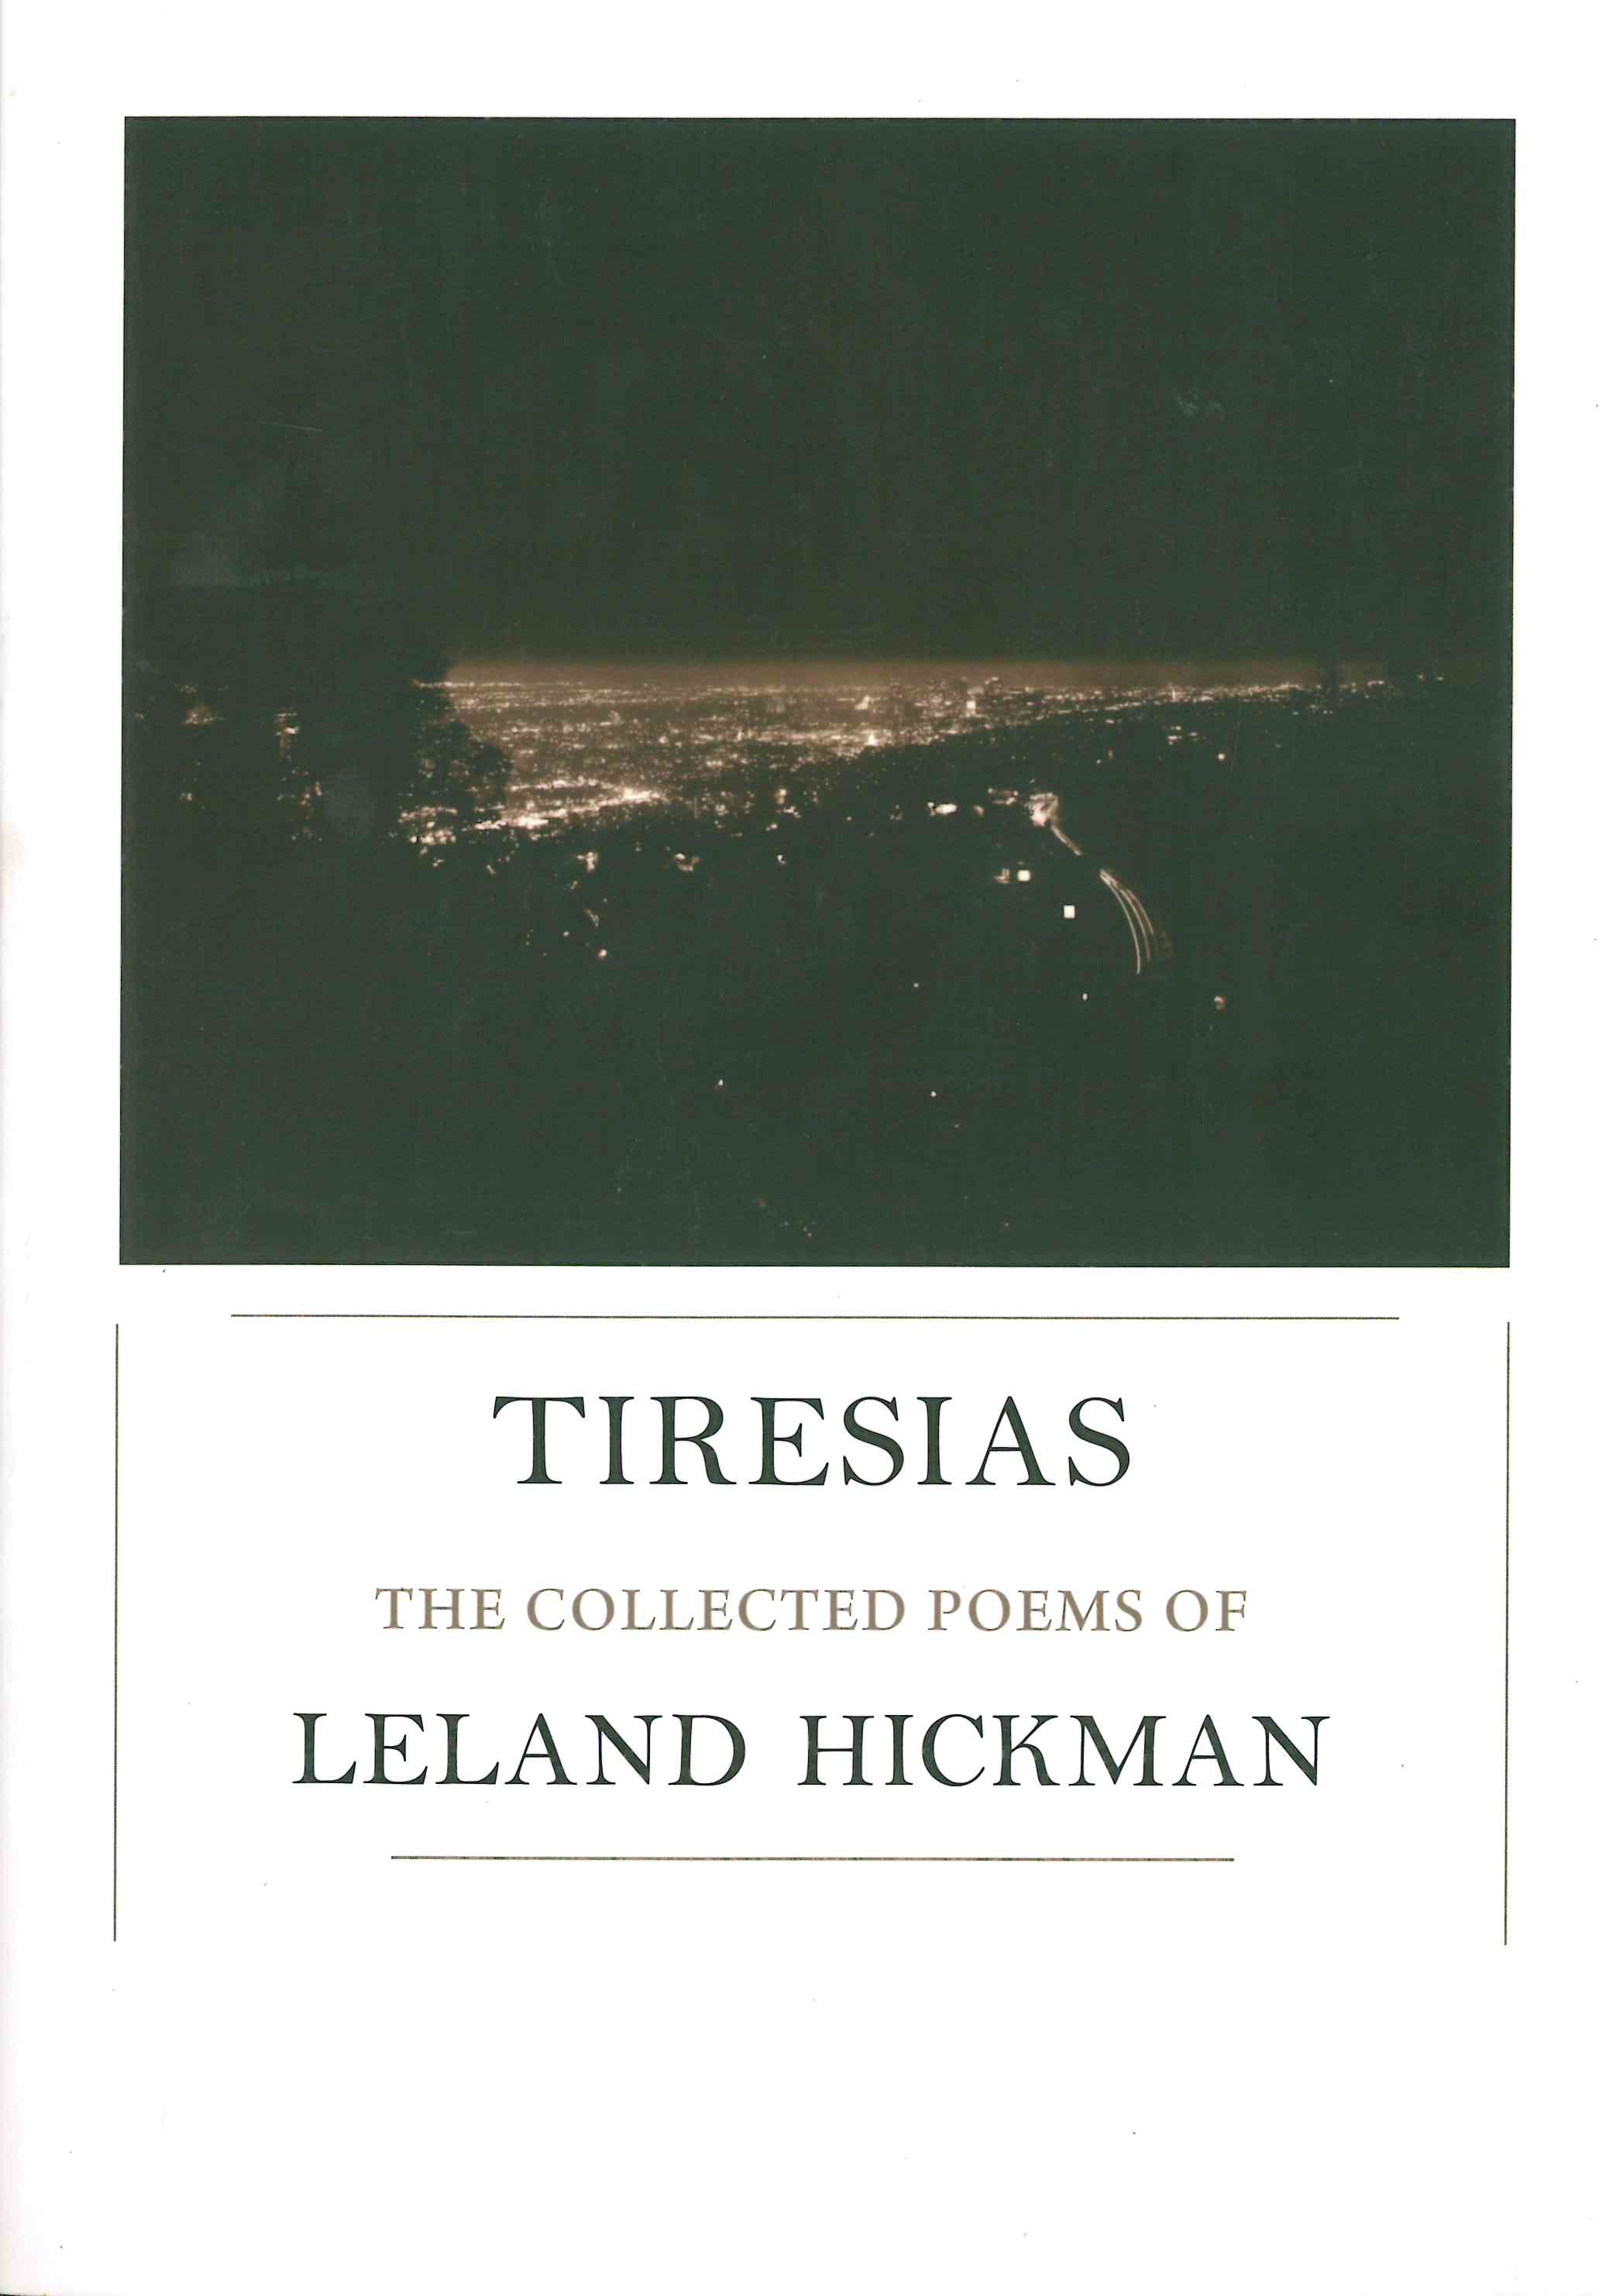 Tiresias: The Collected Poems of Leland Hickman, Leland Hickman